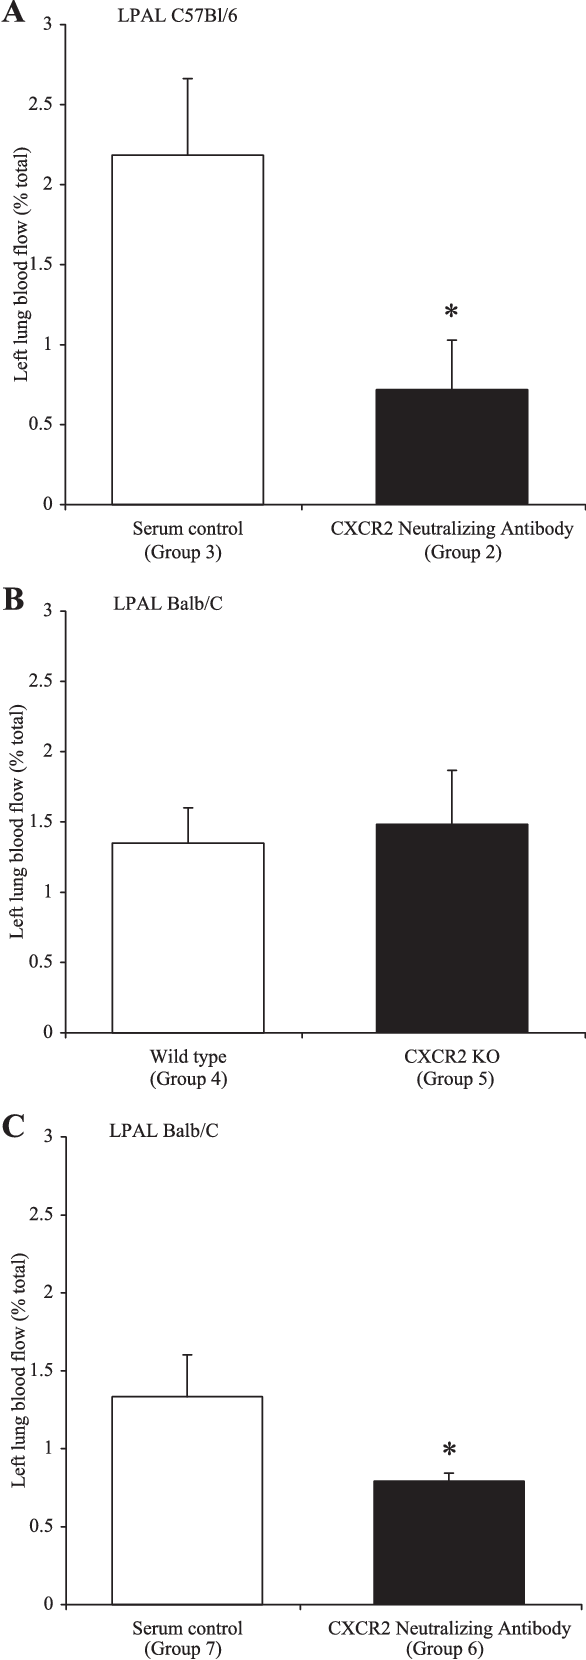 Fig. 1. Average left lung blood flow as a percent (%) total blood flow, 14 days after left pulmonary artery ligation (LPAL). A: compares serum-treated control C57Bl/6 mice (group 3; n 4) with mice treated every 48 h with a CXCR2-neutralizing antibody (group 2; n 4; *P 0.025). B: compares wild-type BALB/c mice (group 4; n 9) with CXCR2 knock out (KO) mice (group 5; n 8). No difference in blood flow to the left lung was observed between the two groups. C: shows blood flow to the left lung after LPAL in serum treated BALB/c mice (group 7; n 5) with mice treated with CXCR2-neutralizing antibody (group 6; n 7). A significant reduction in blood flow to the left lung was observed 14 days after LPAL (*P 0.026).